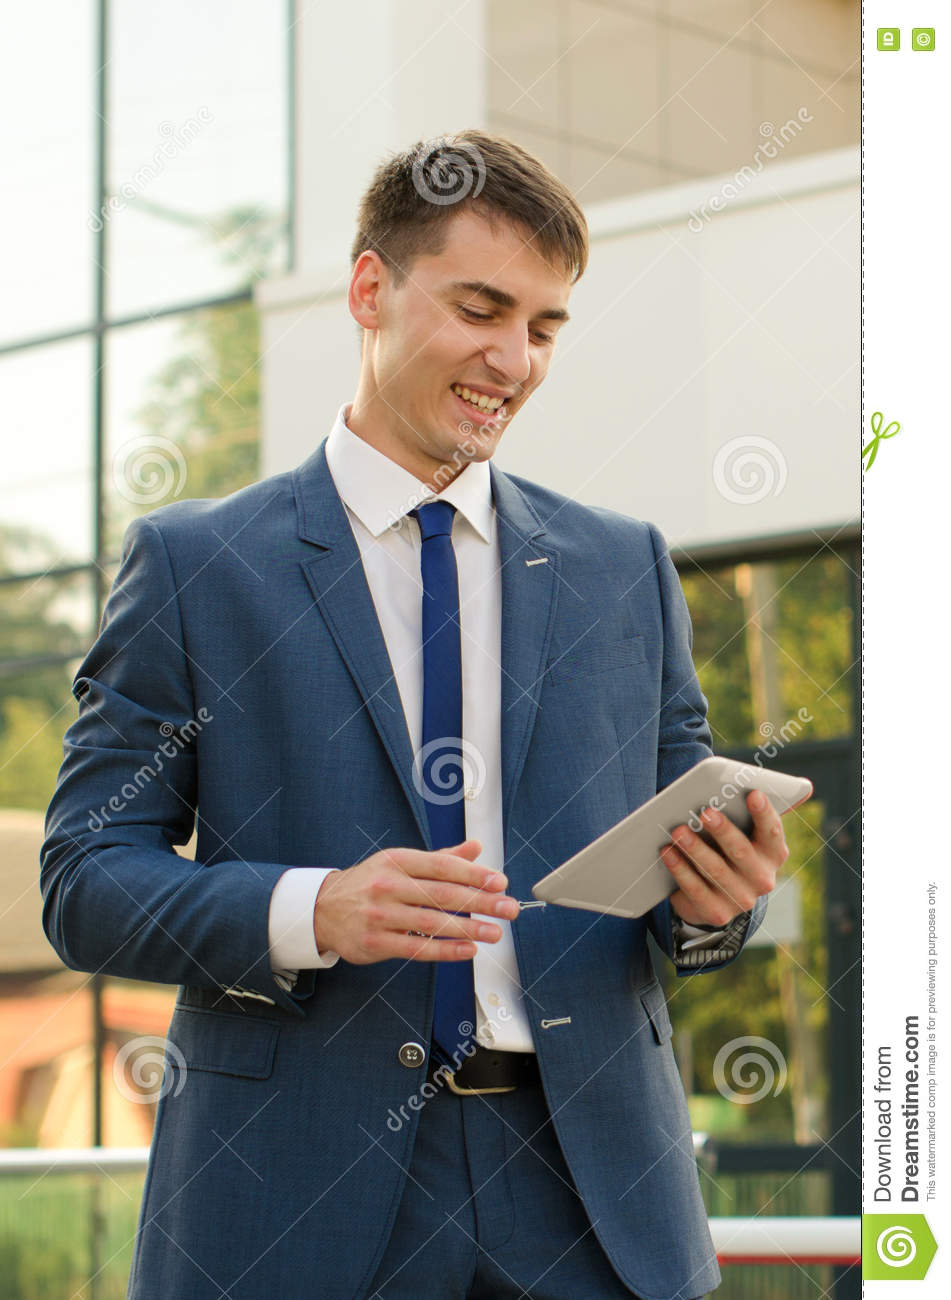 portrait of a young man professional banker working on touch pad while standing in modern office banker office space